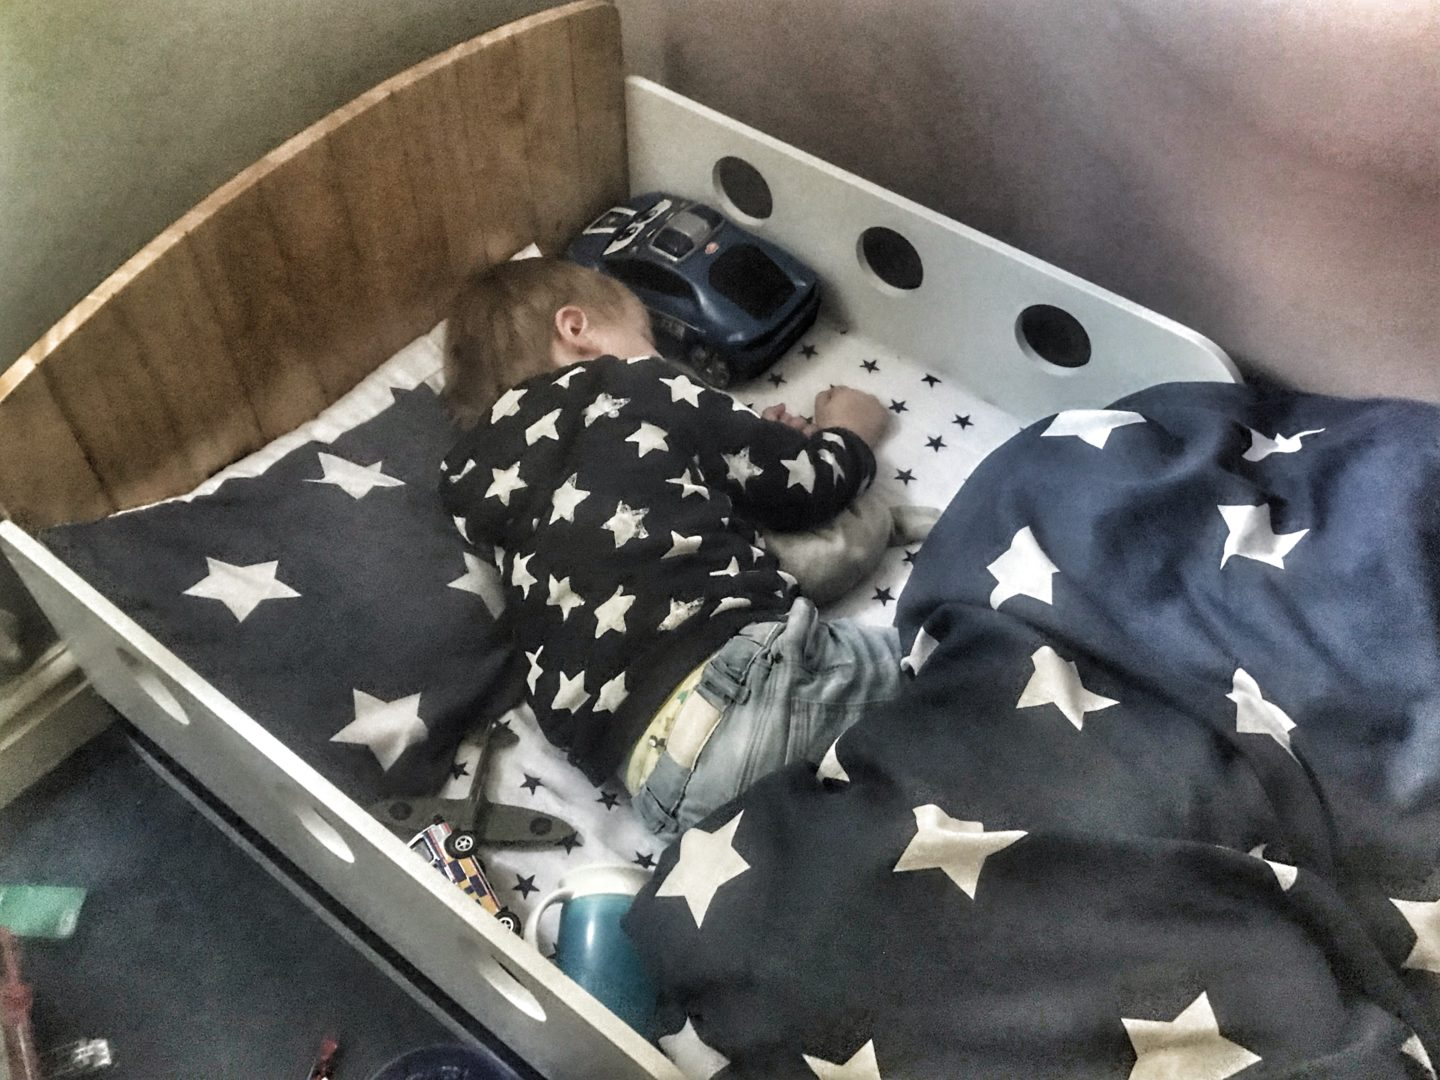 transitioning to a toddler bed, here is Dexter in his toddler bed asleep wearing a navy blue hoodie with white stars and the same style bedding